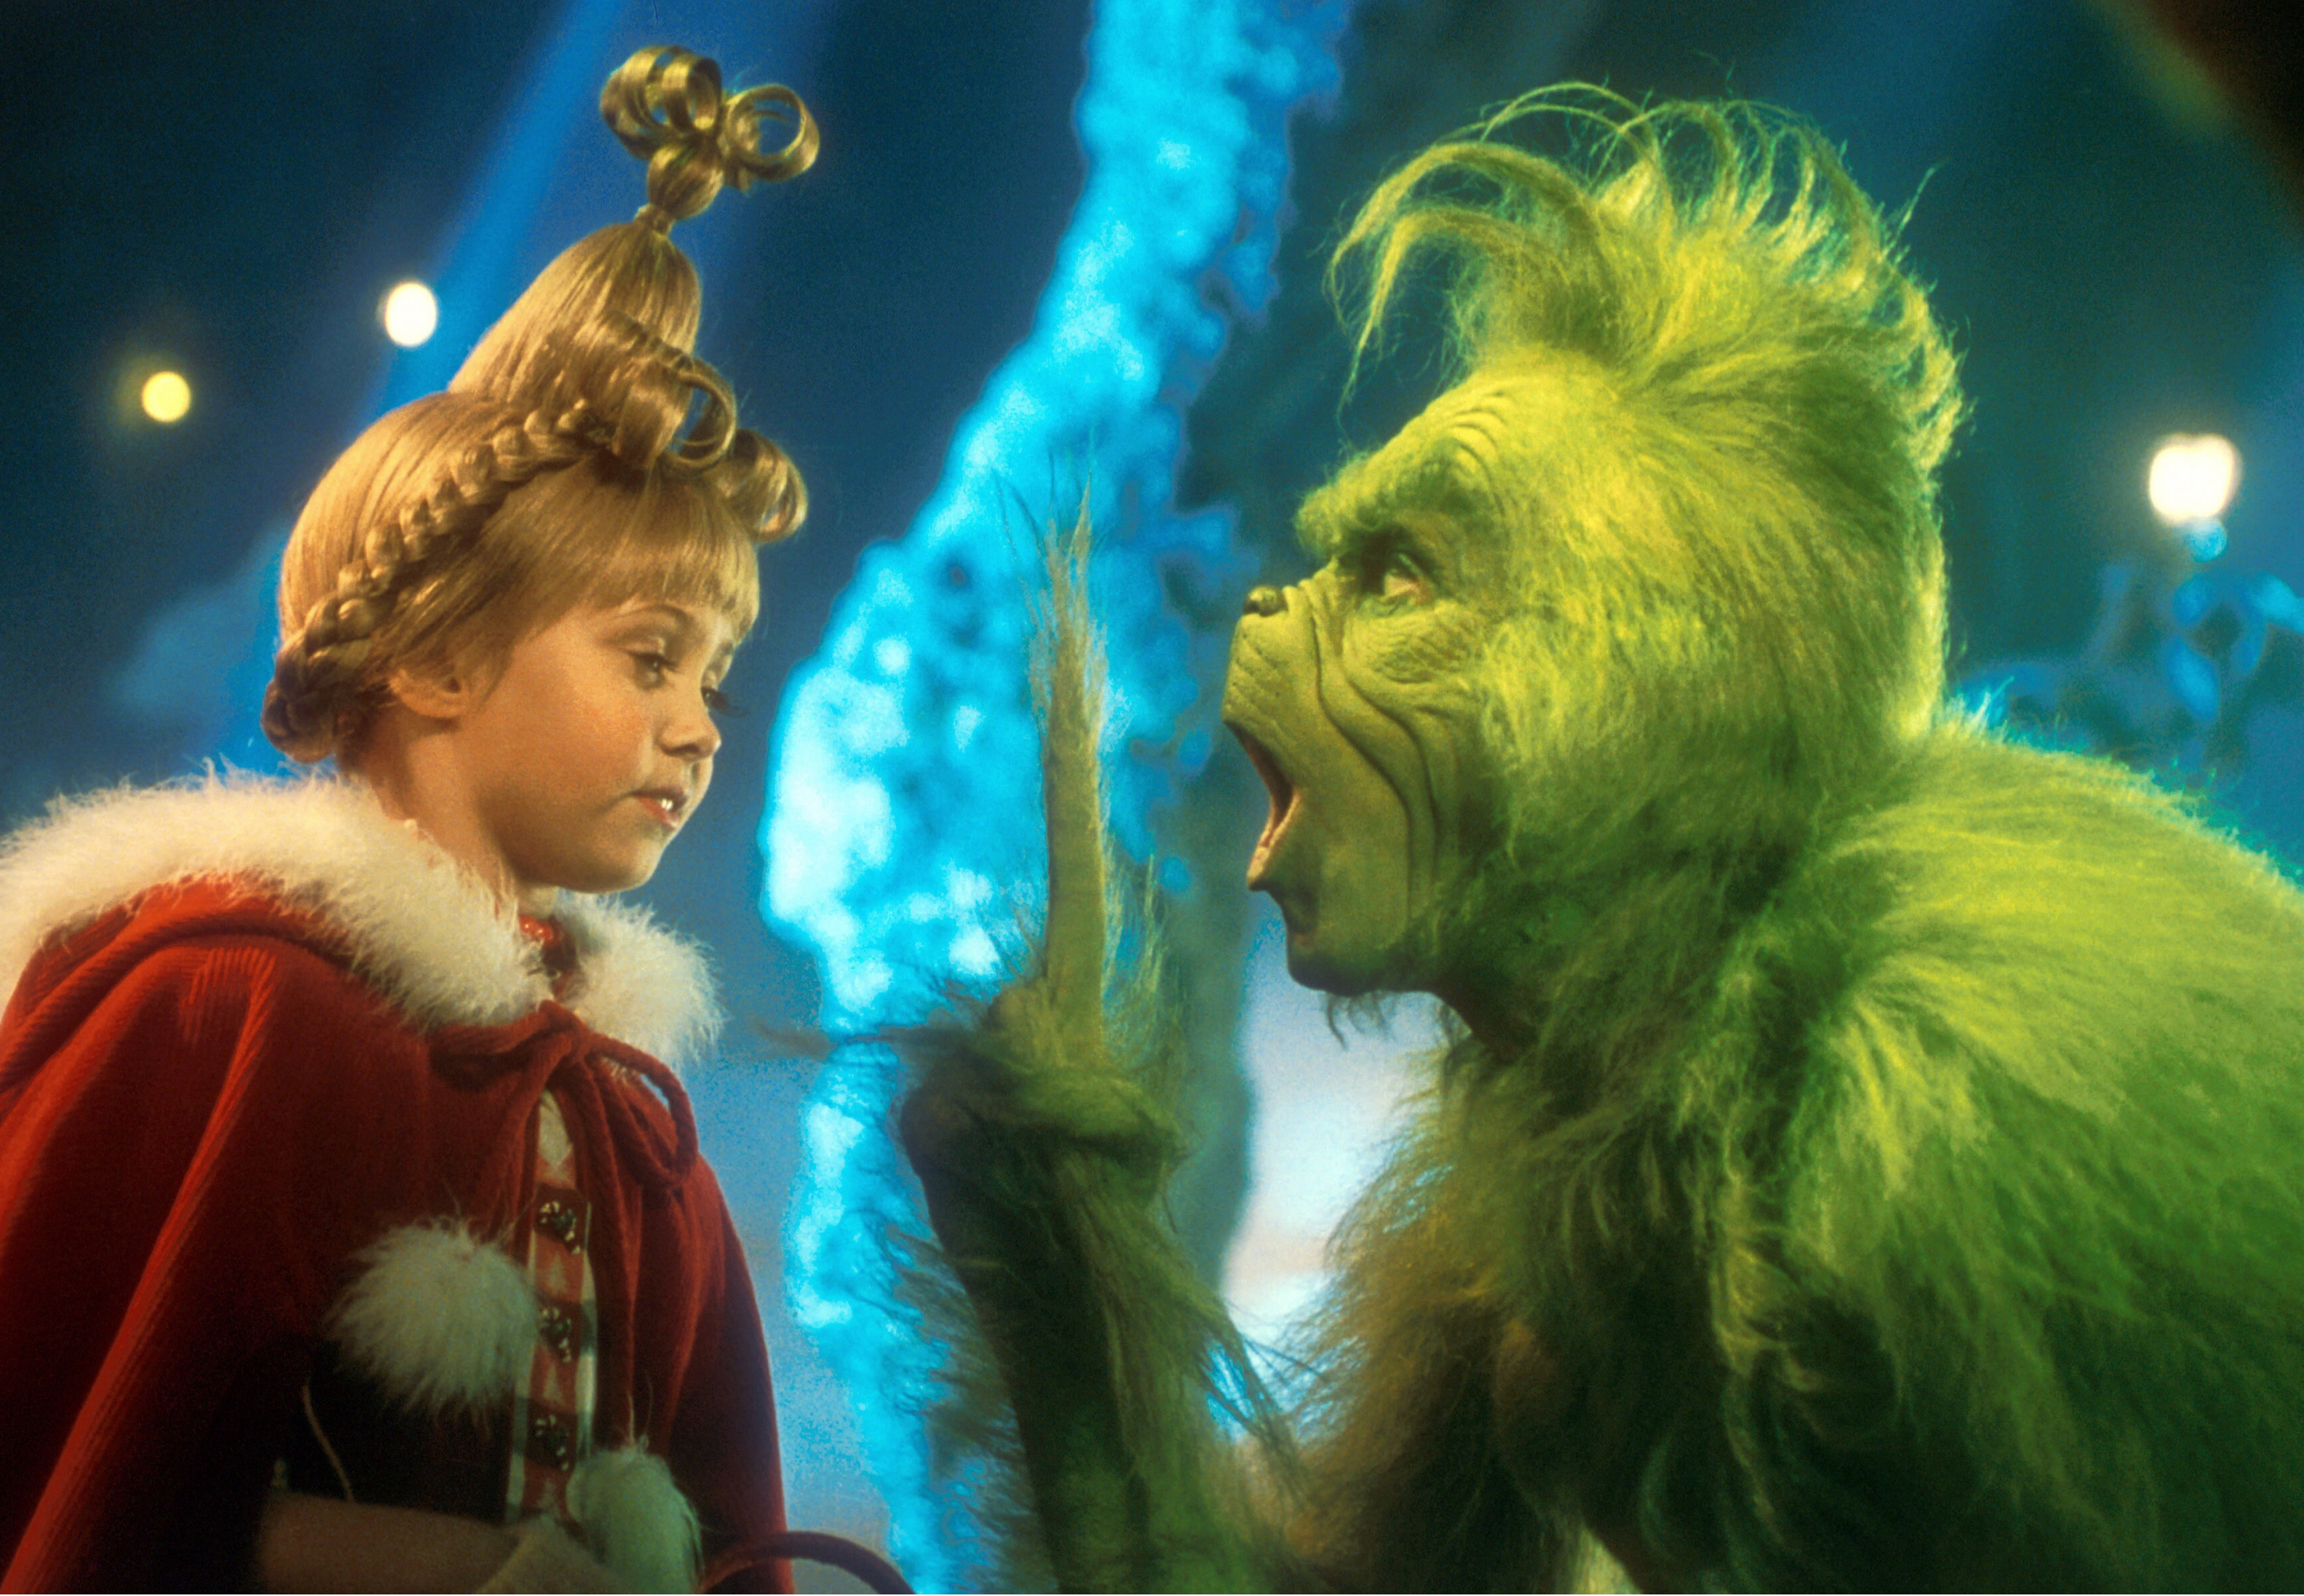 The Grinch Who Stole Christmas Cast.How The Grinch Stole Christmas Cast Where Are They Now